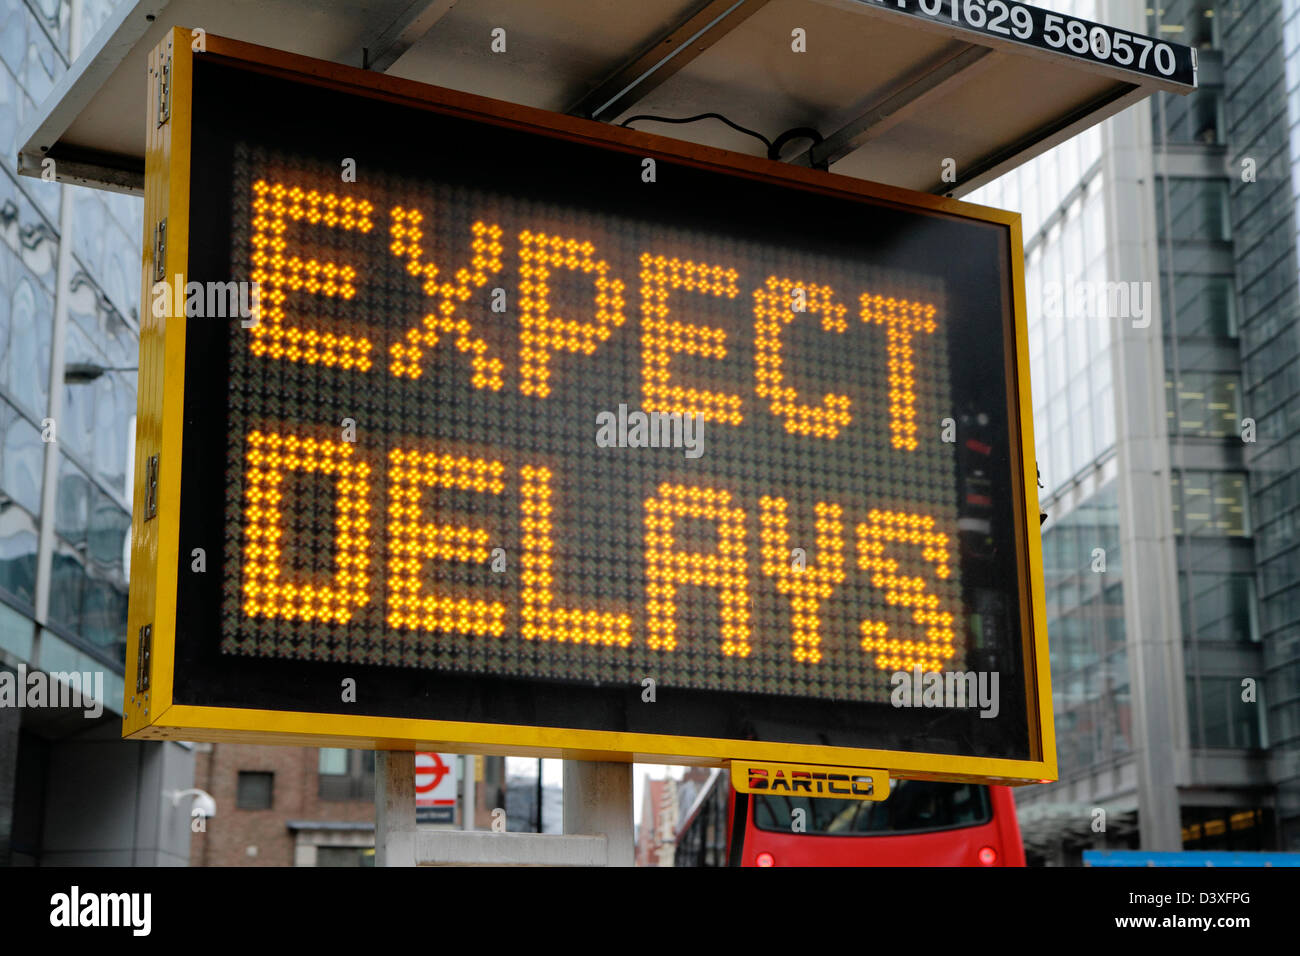 Electronic matrix sign advising of traffic delays, London, UK - Stock Image